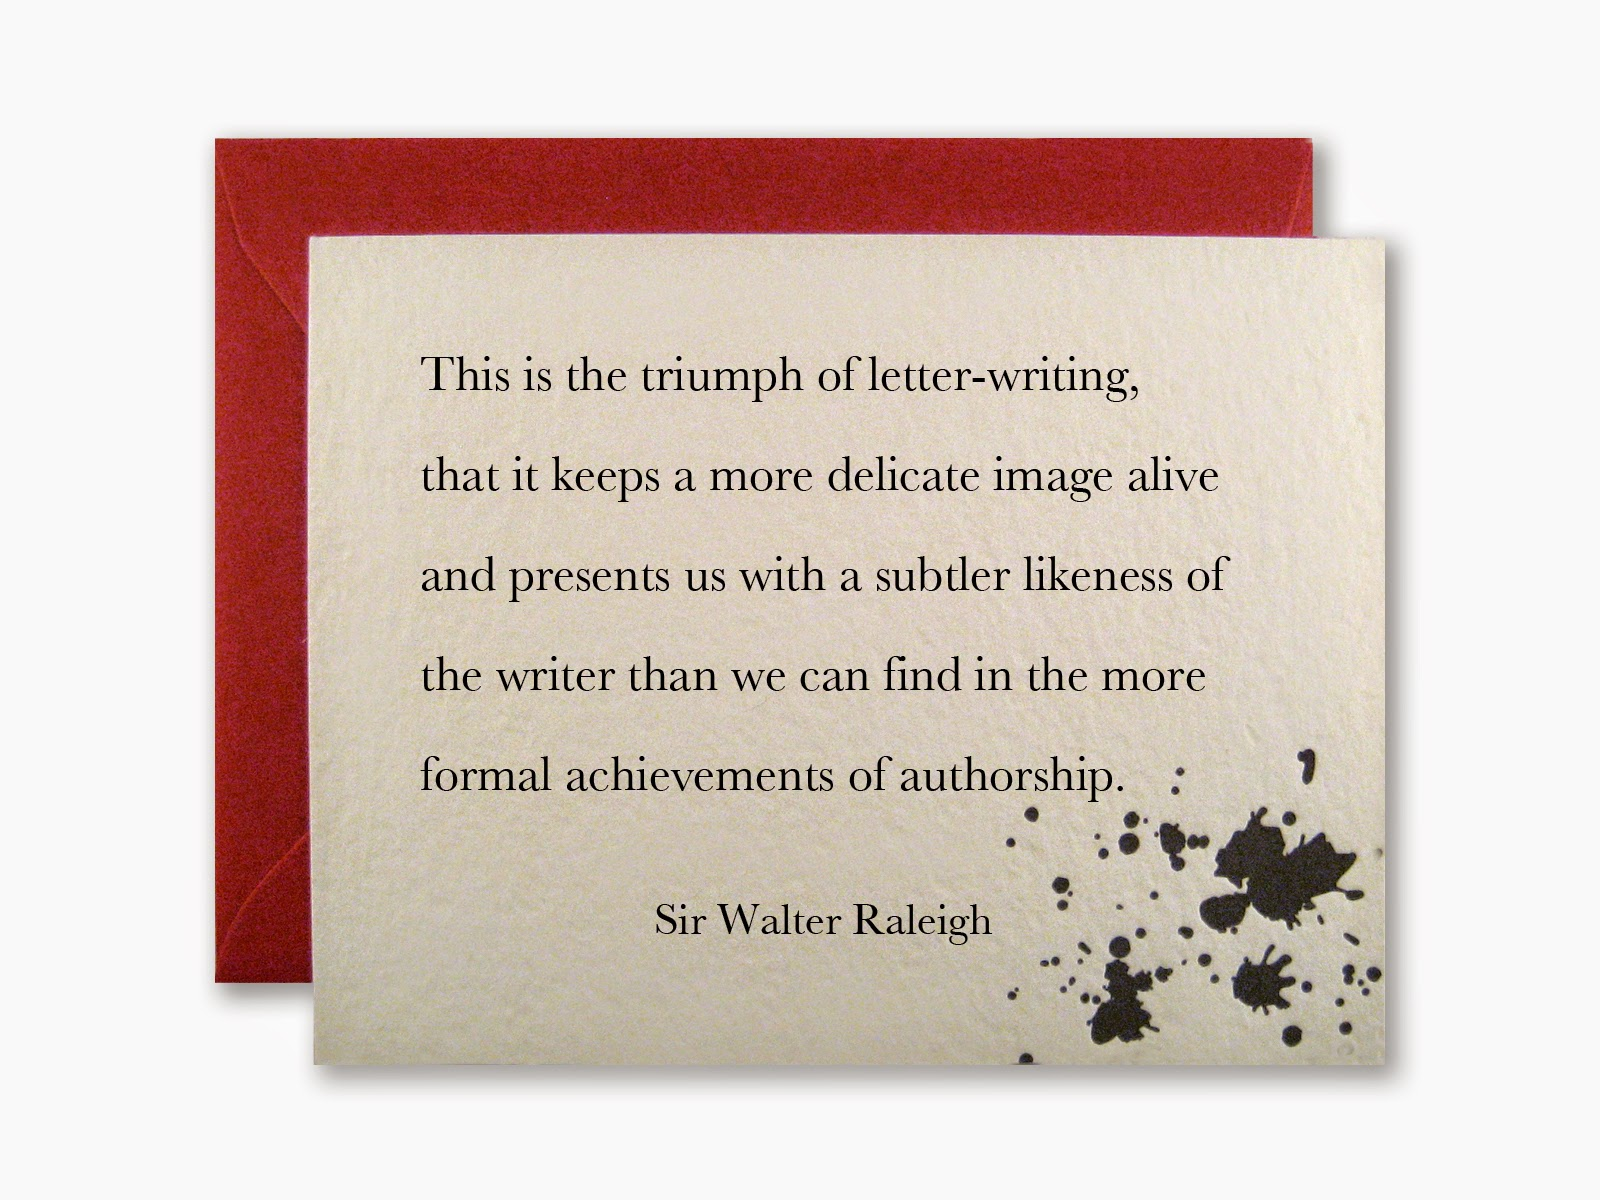 This is the triumph of letter-writing, that it keeps a more delicate image alive and presents us with a subtler likeness of the writer than we can find in the more formal achievements of authorship. - Sir Walter Raleigh